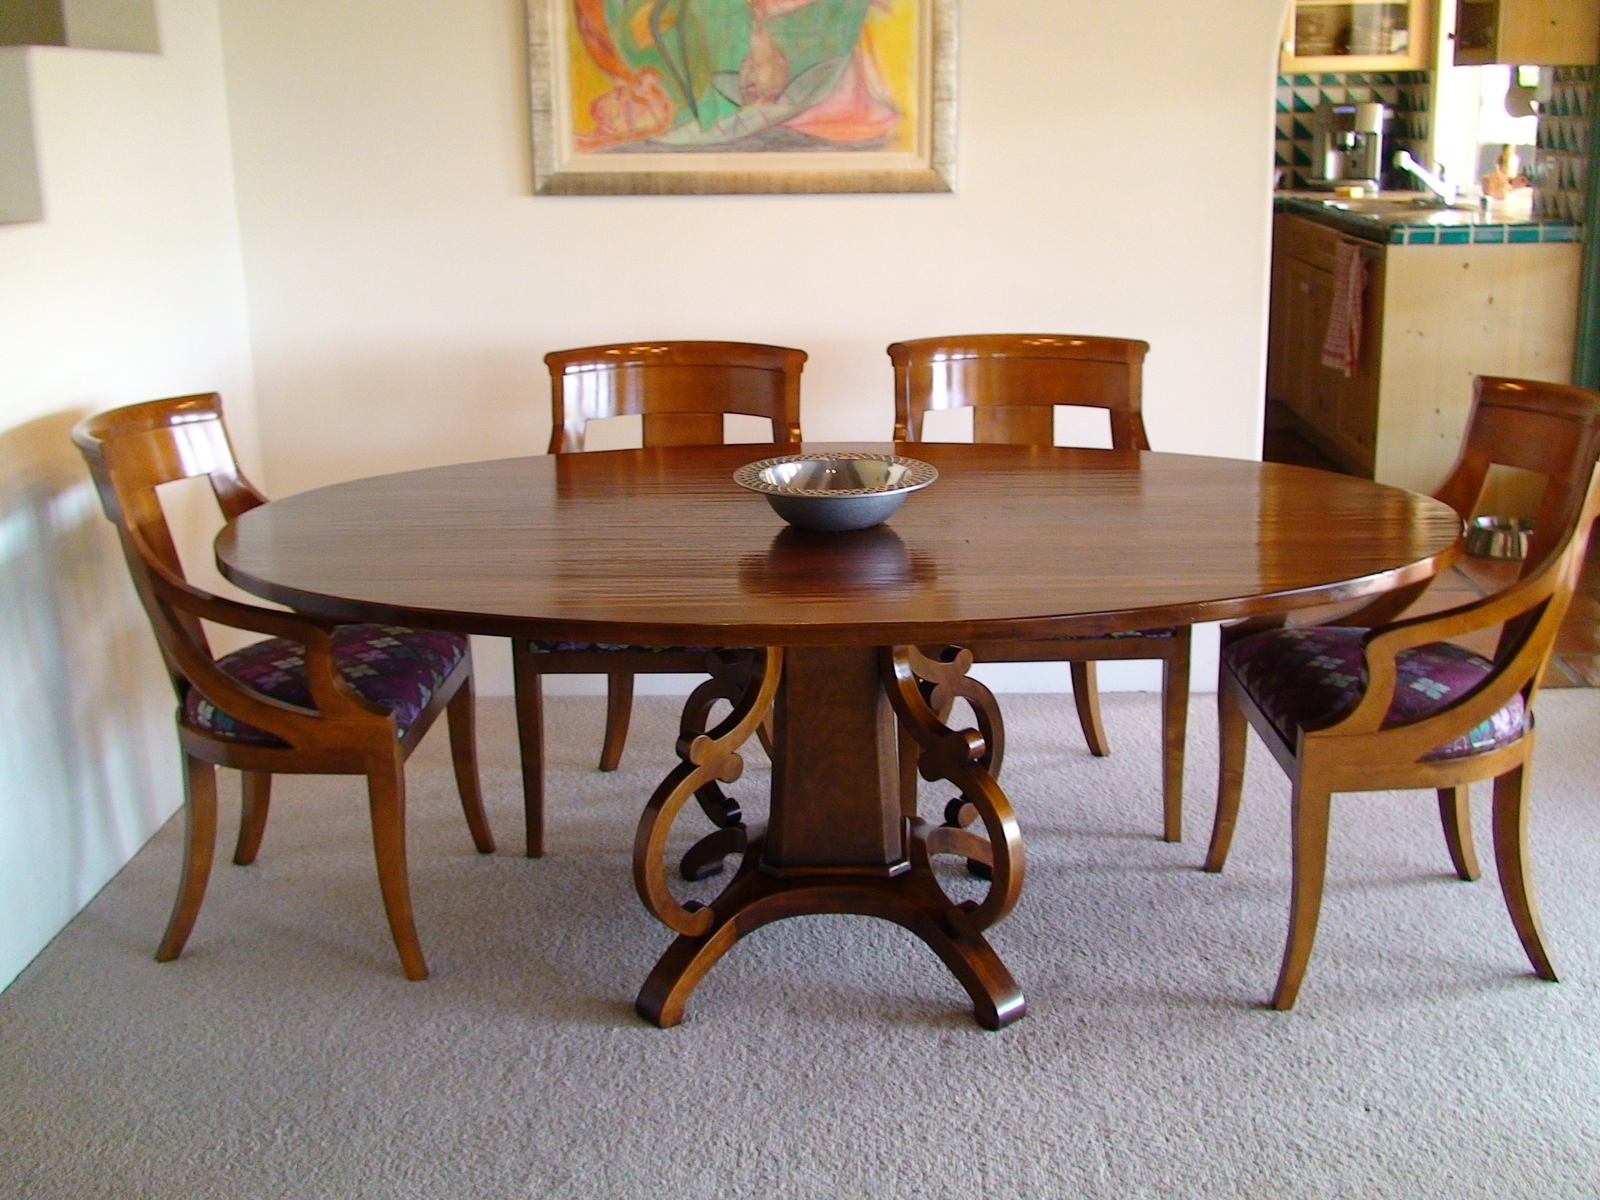 Wood dining table designs full hd pictures for Dining table designs in wood and glass